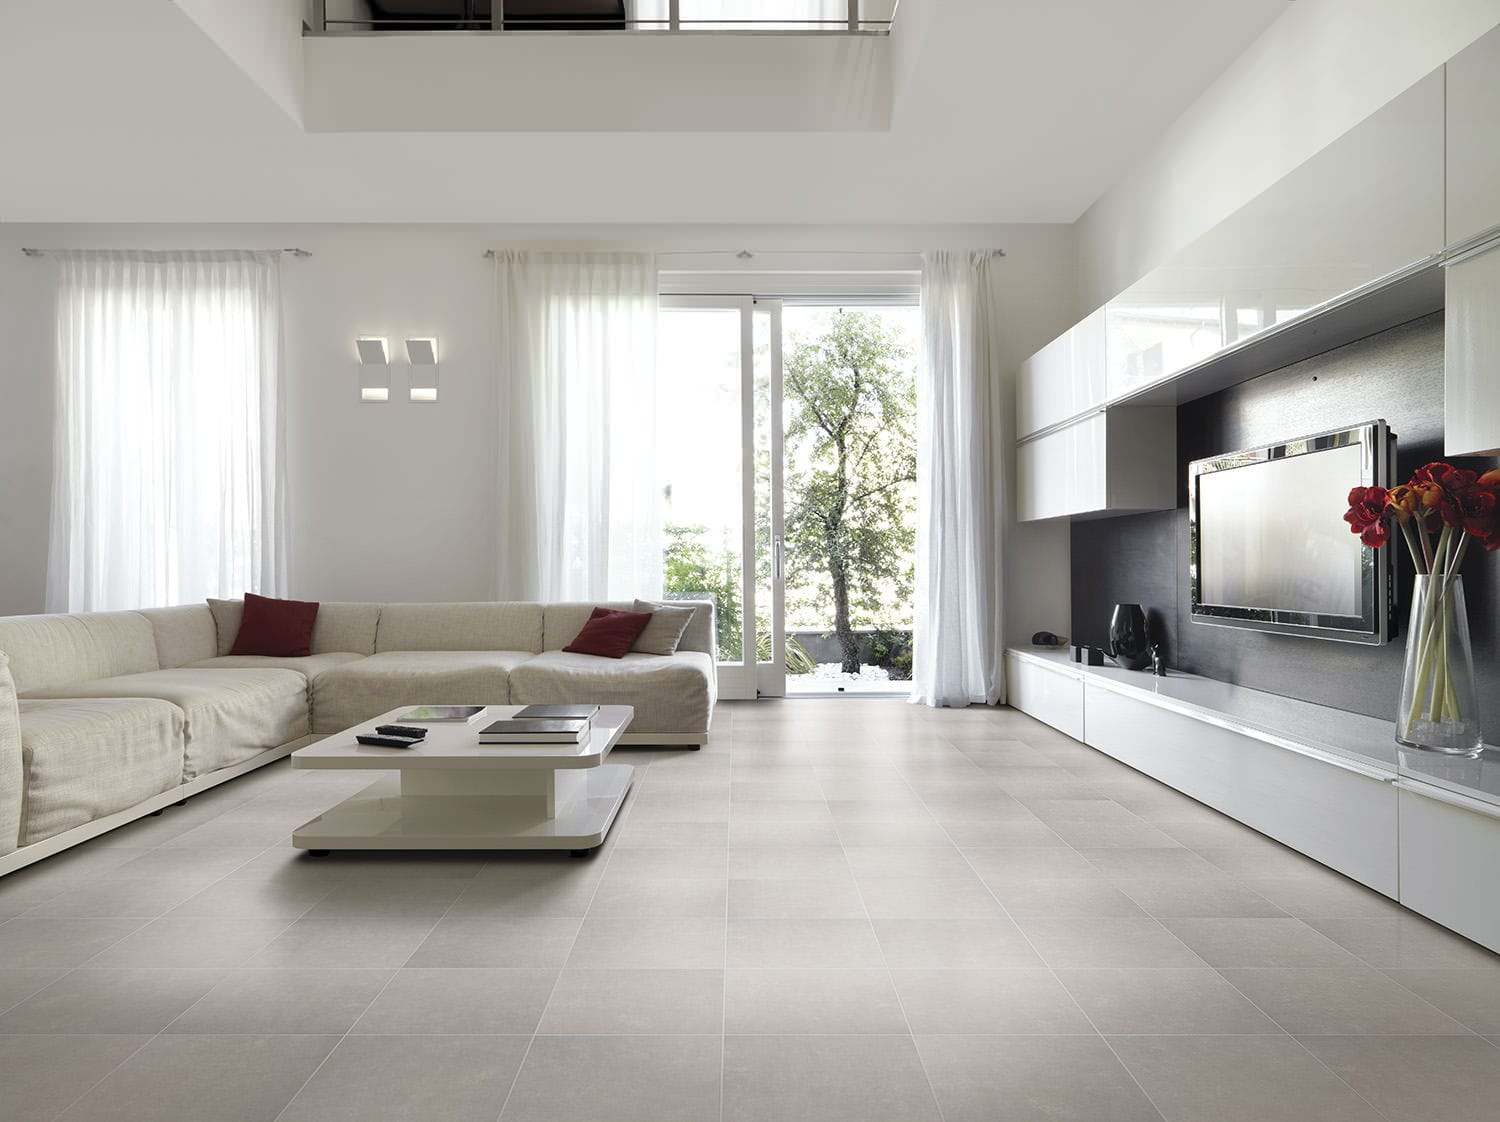 Living room tile / floor / ceramic / satin - DUBAI - Alfagres S.A.